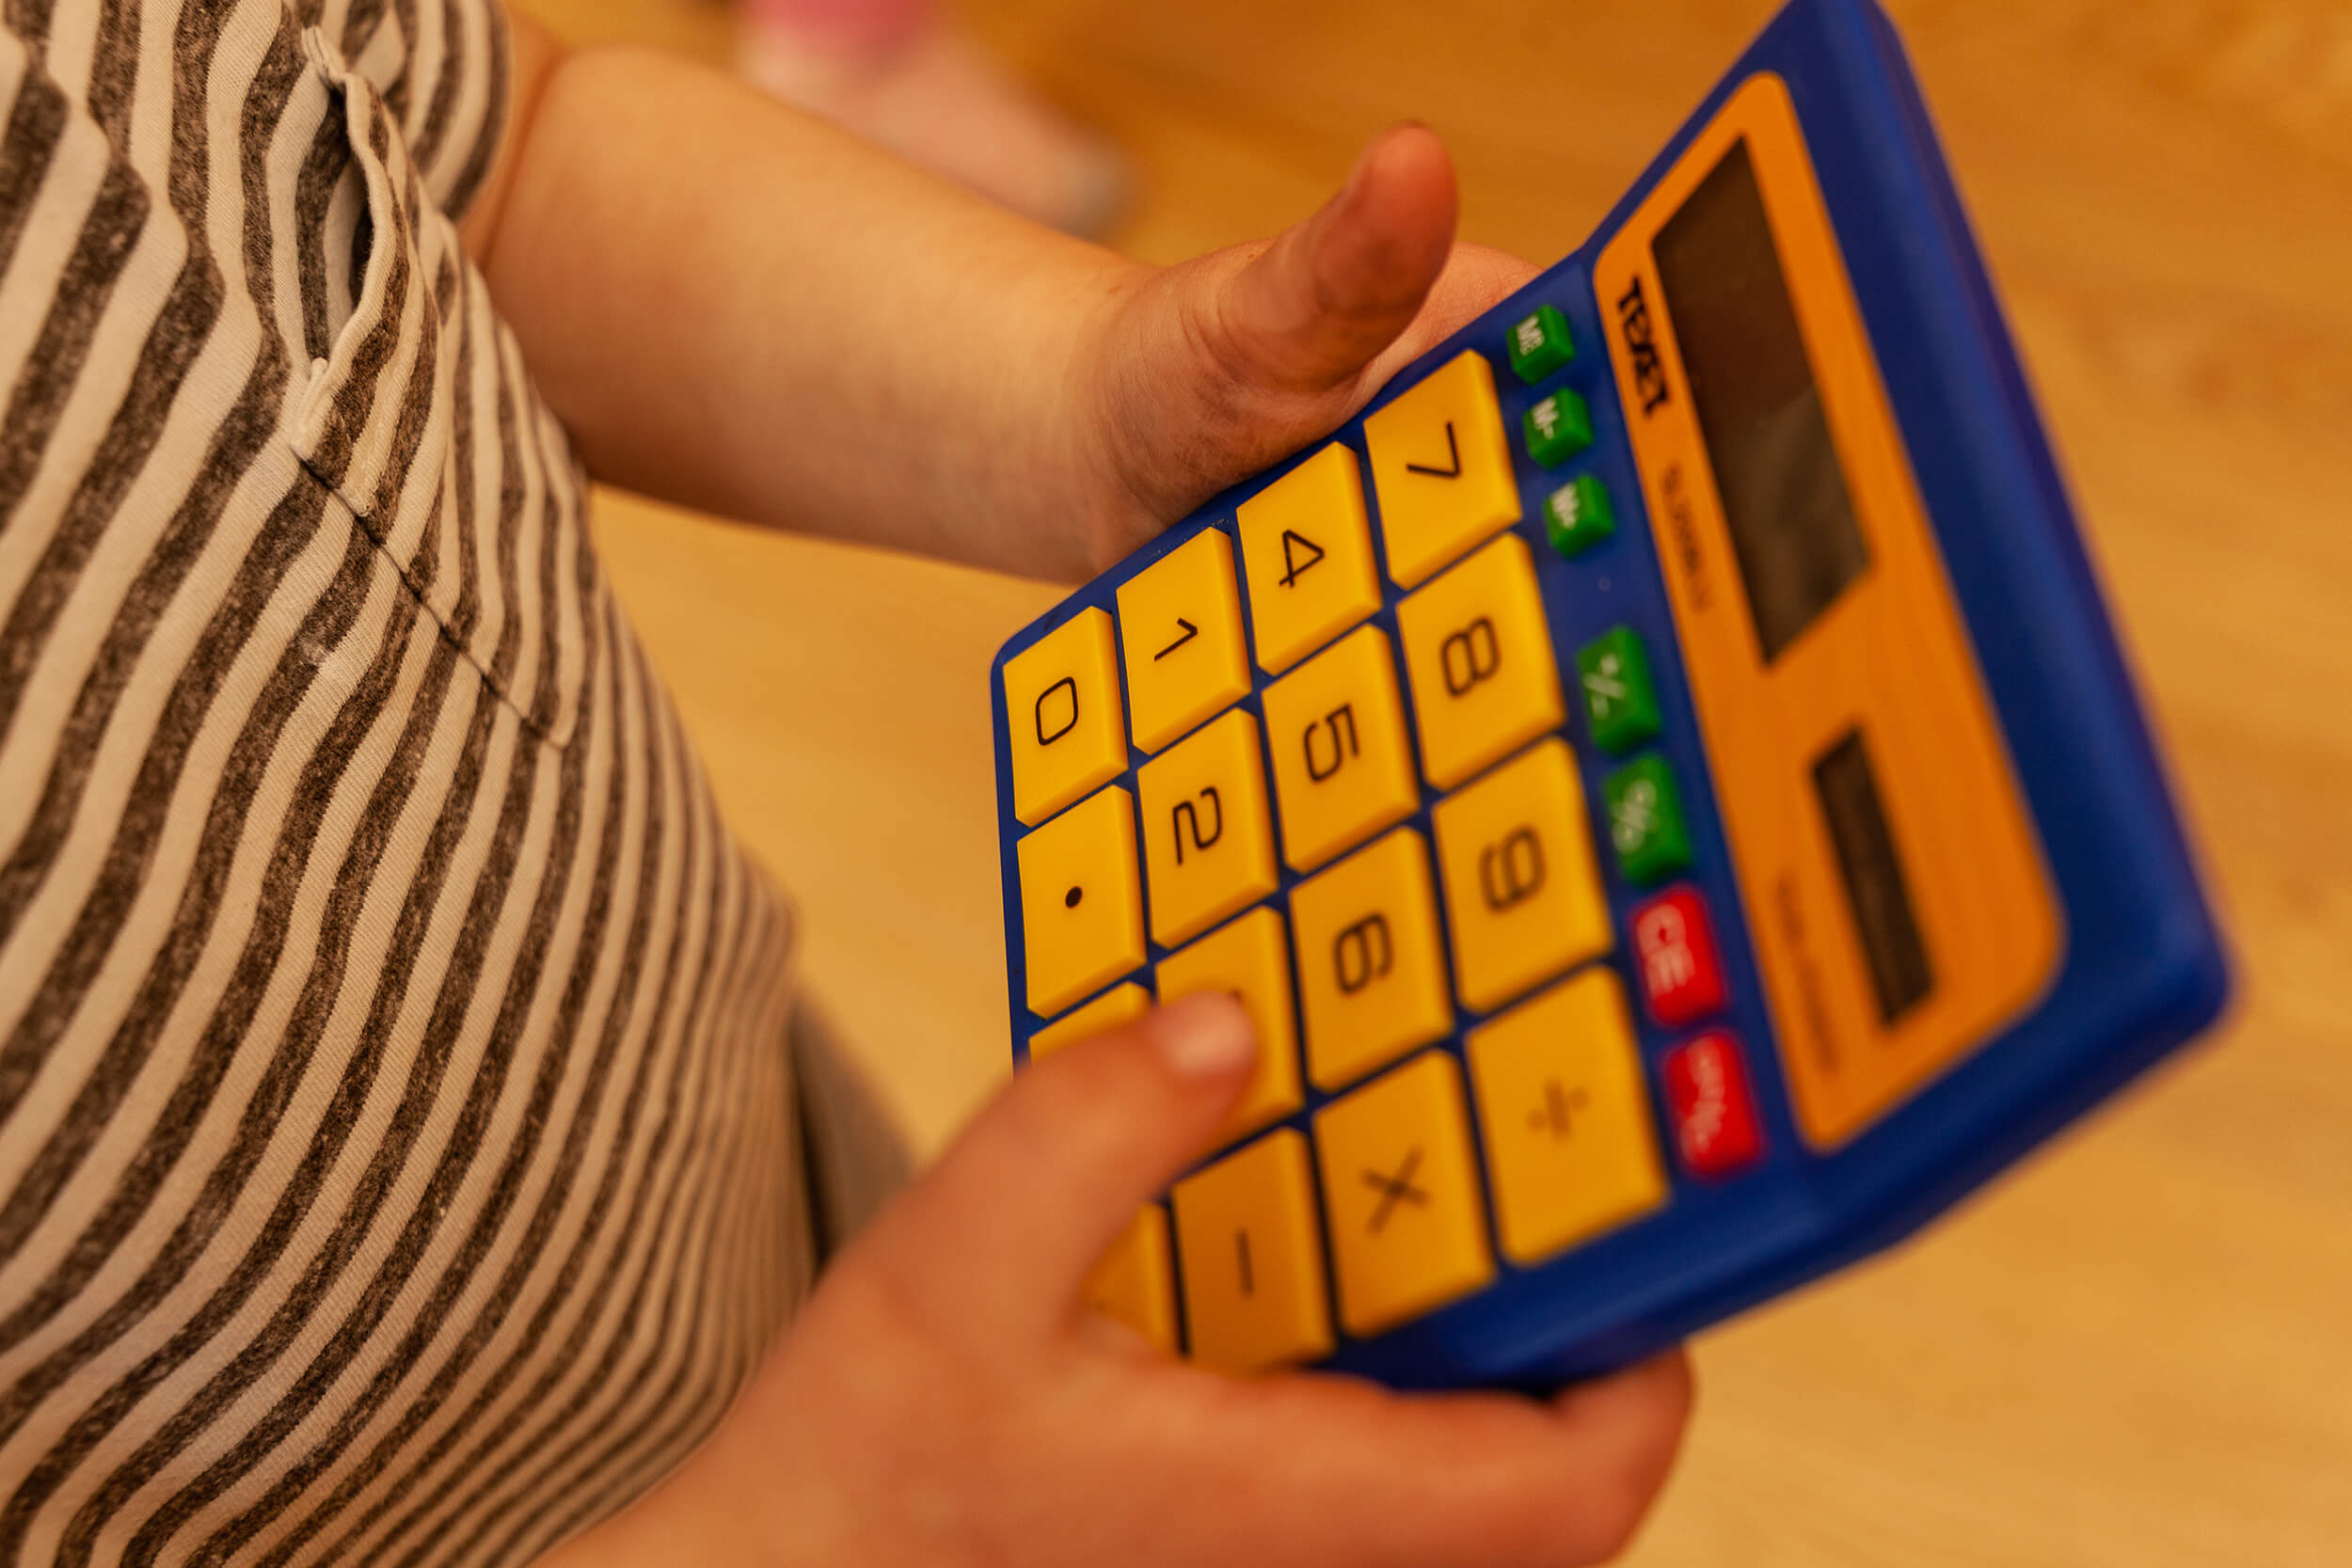 Boy playing with a calculator